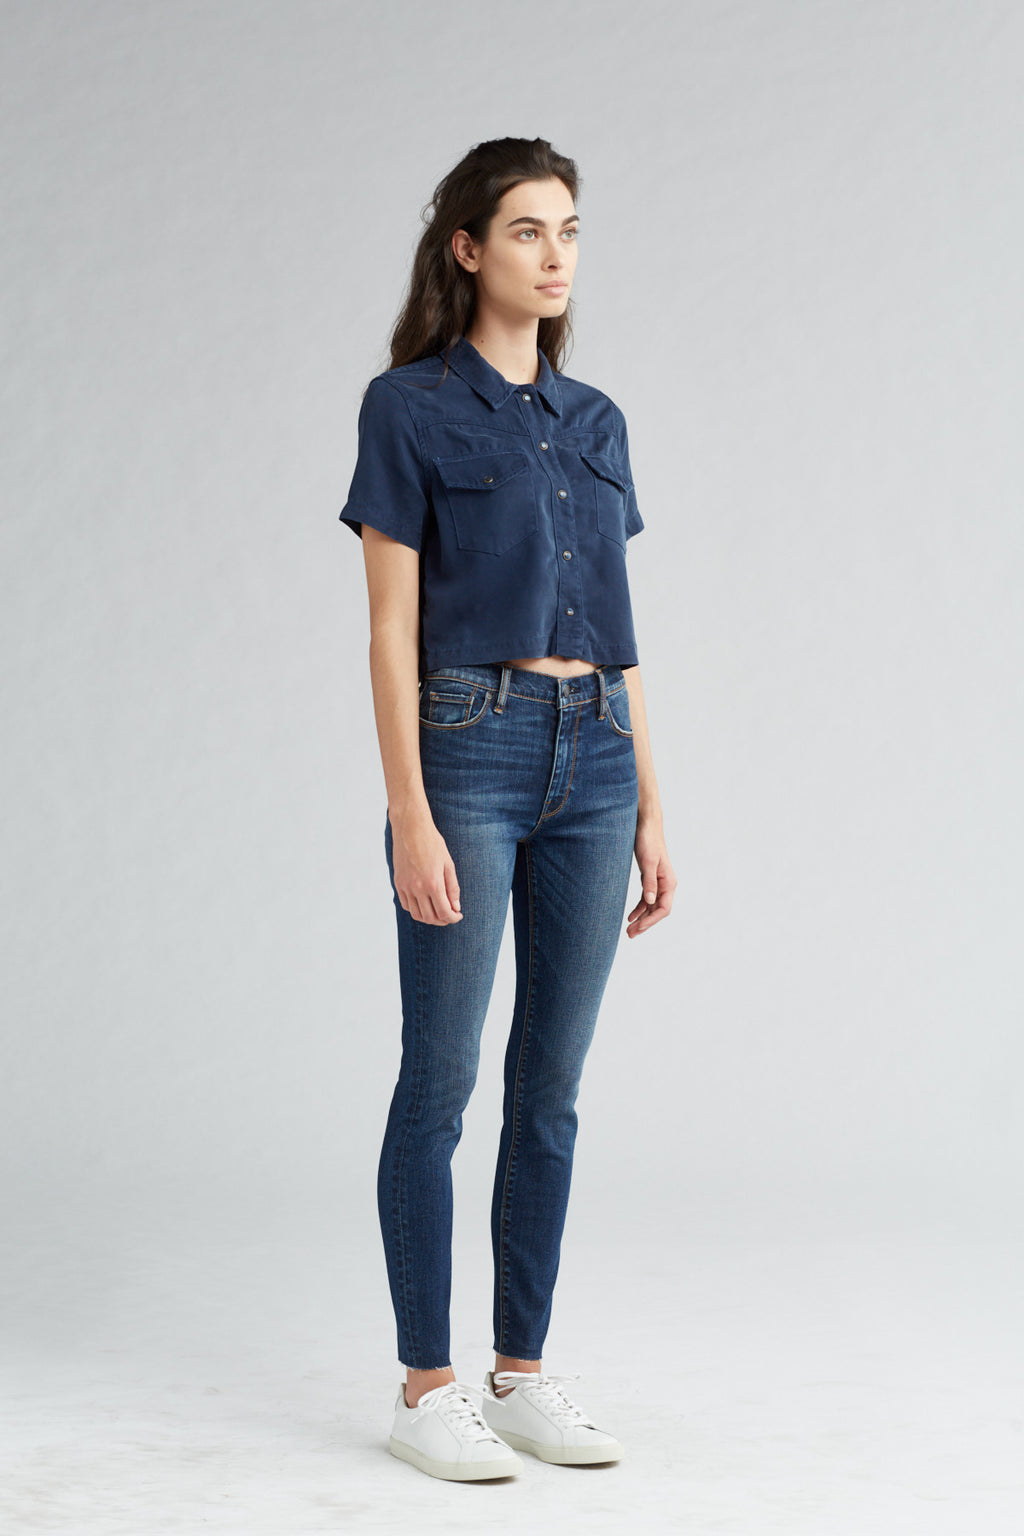 BARBARA HIGH RISE SUPER SKINNY ANKLE JEAN - VAGABOND RAW HEM - Image 2